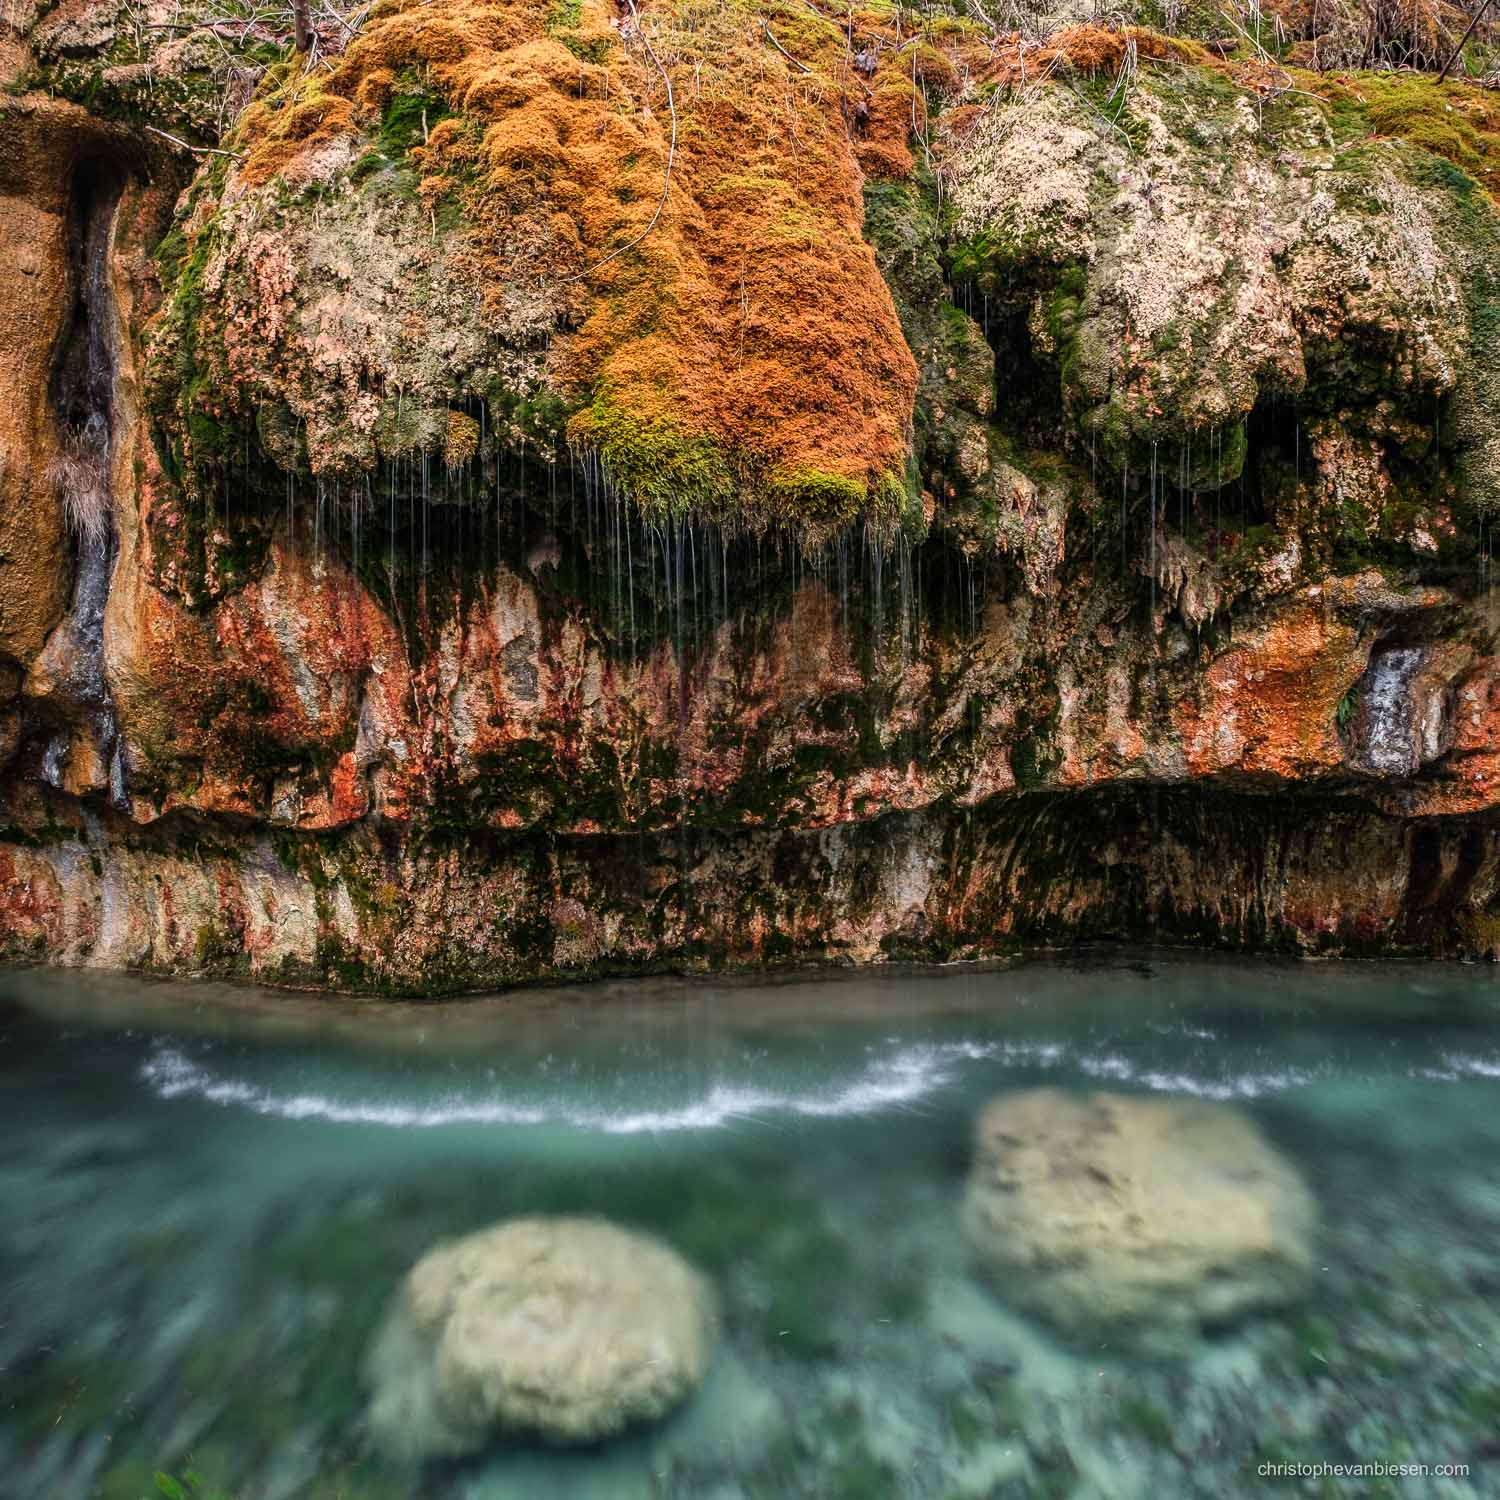 Visit the Mullerthal - Luxembourg - Waterfall in the Mullerthal, Luxembourg's Little Switzerland - Fairy Pool